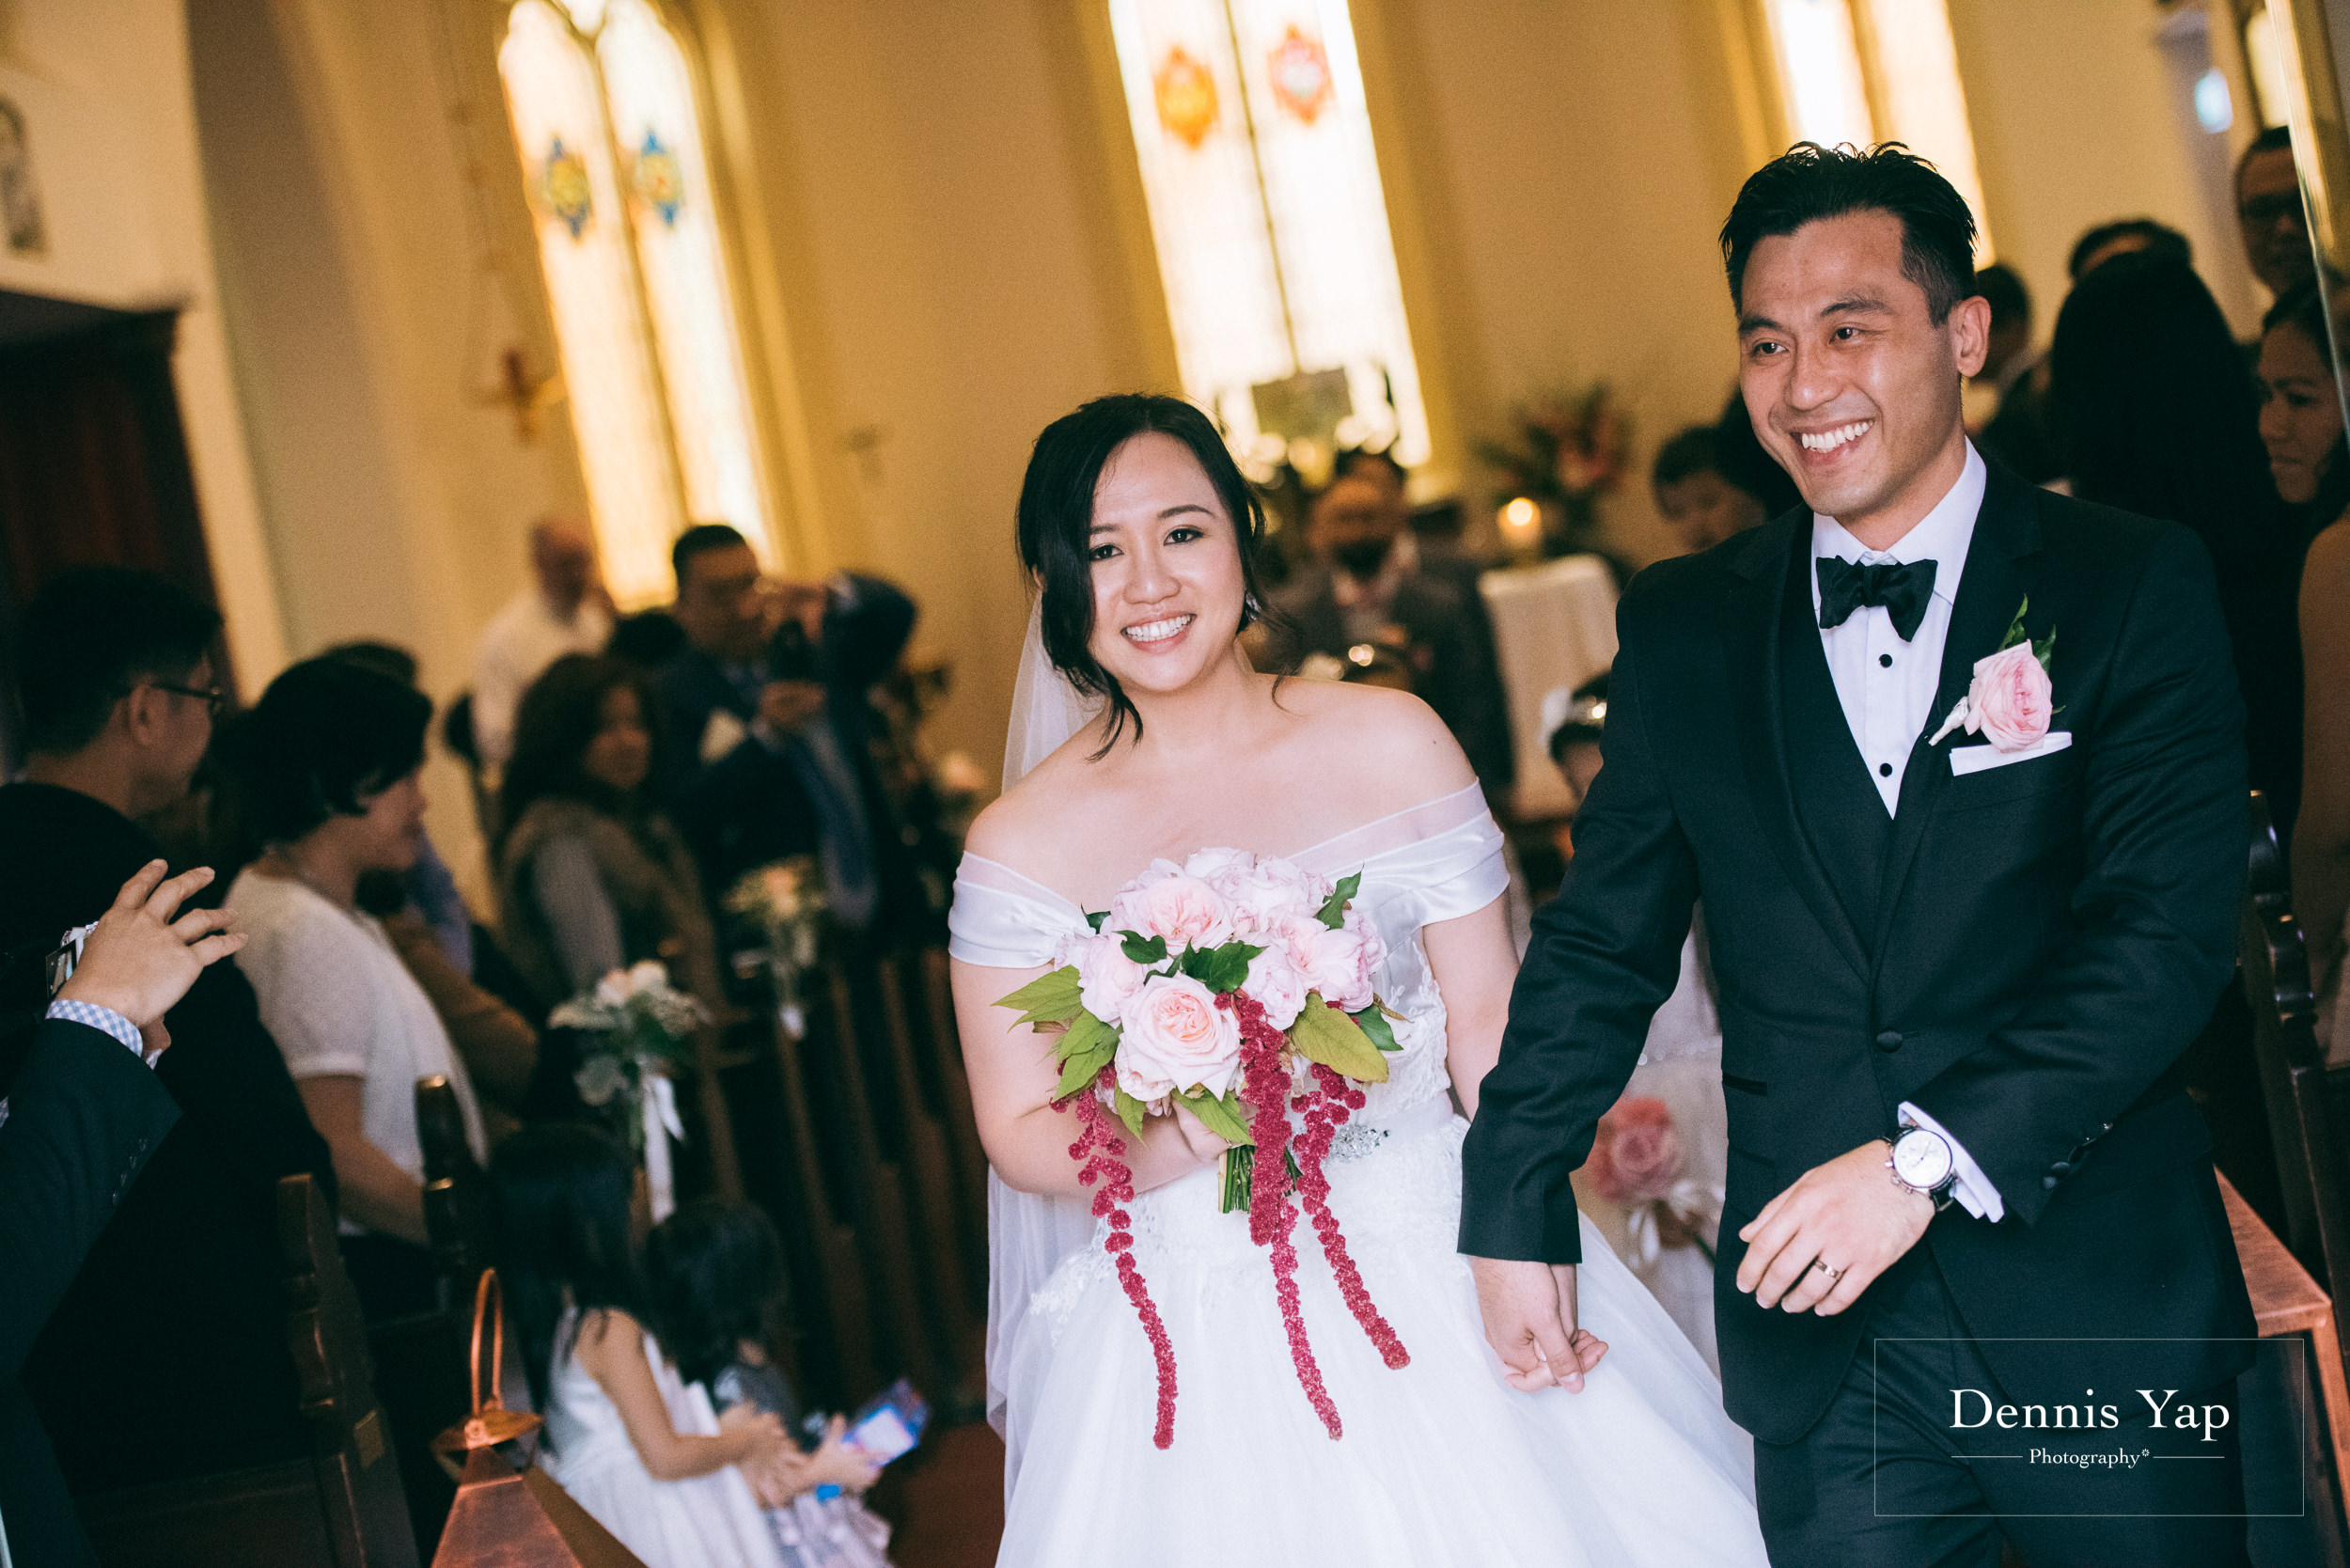 tony daphne wedding day melbourne RACV dennis yap photography malaysia top photographer beloved real moments-38.jpg